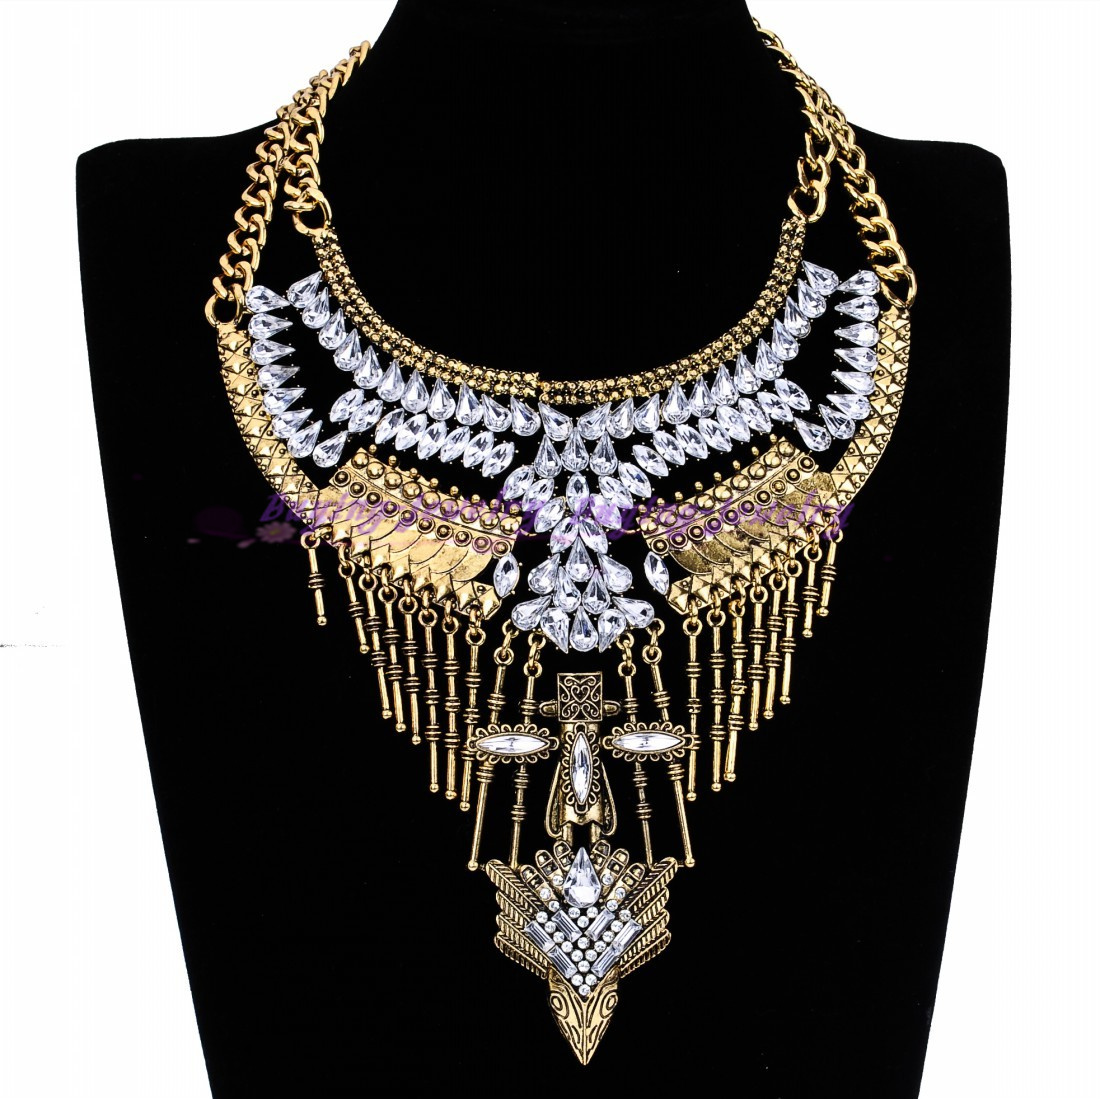 Vintage Gold Silver Ethnic Chain Charm Glass Crystal Choker Statement Necklace